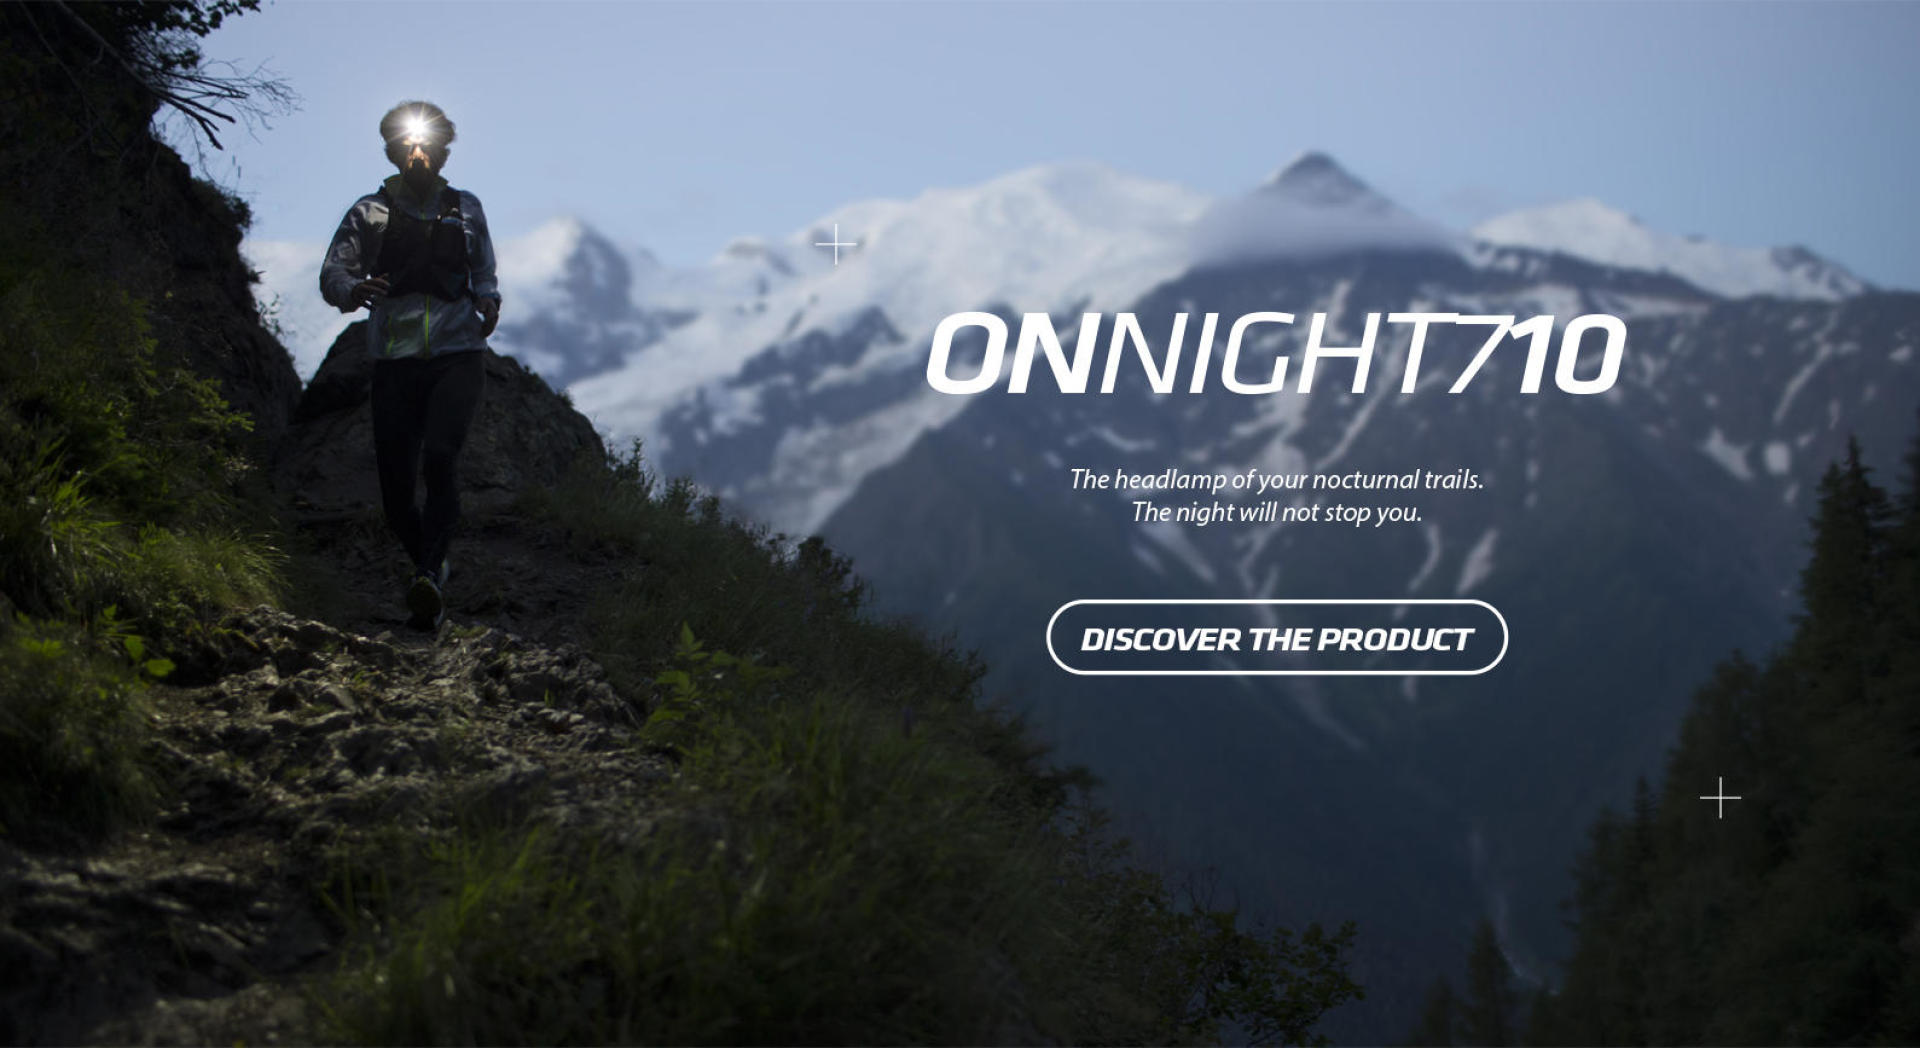 Discover our headlamp ONnight 710